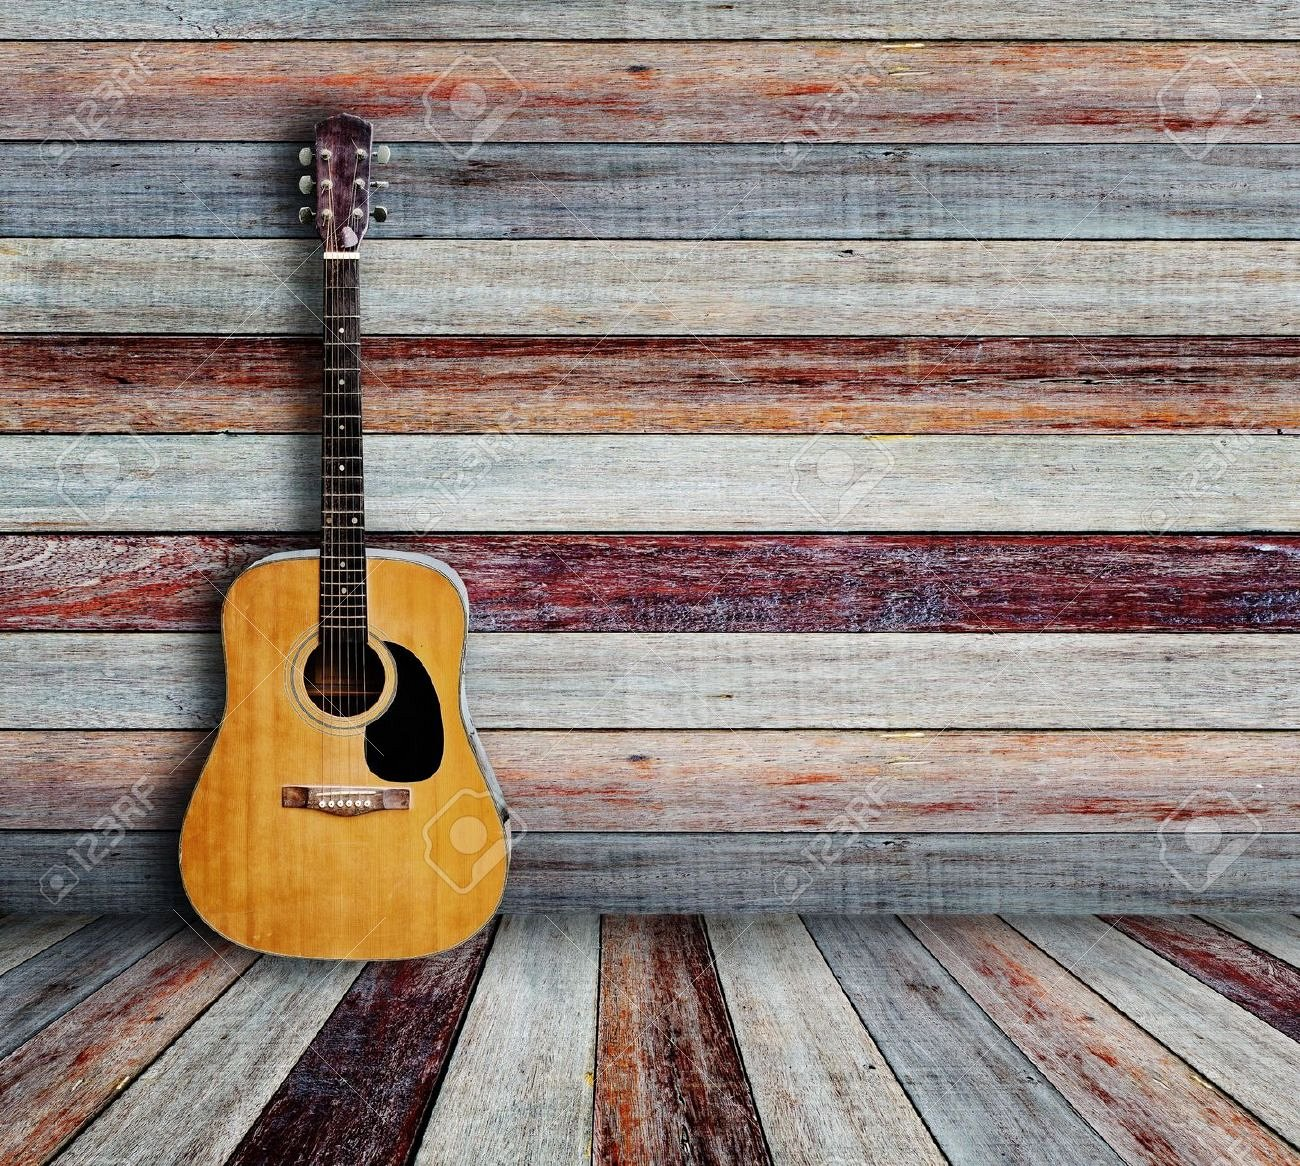 Country Music Wallpaper: Guitar Class For Children @ The Workshop « Lebtivity